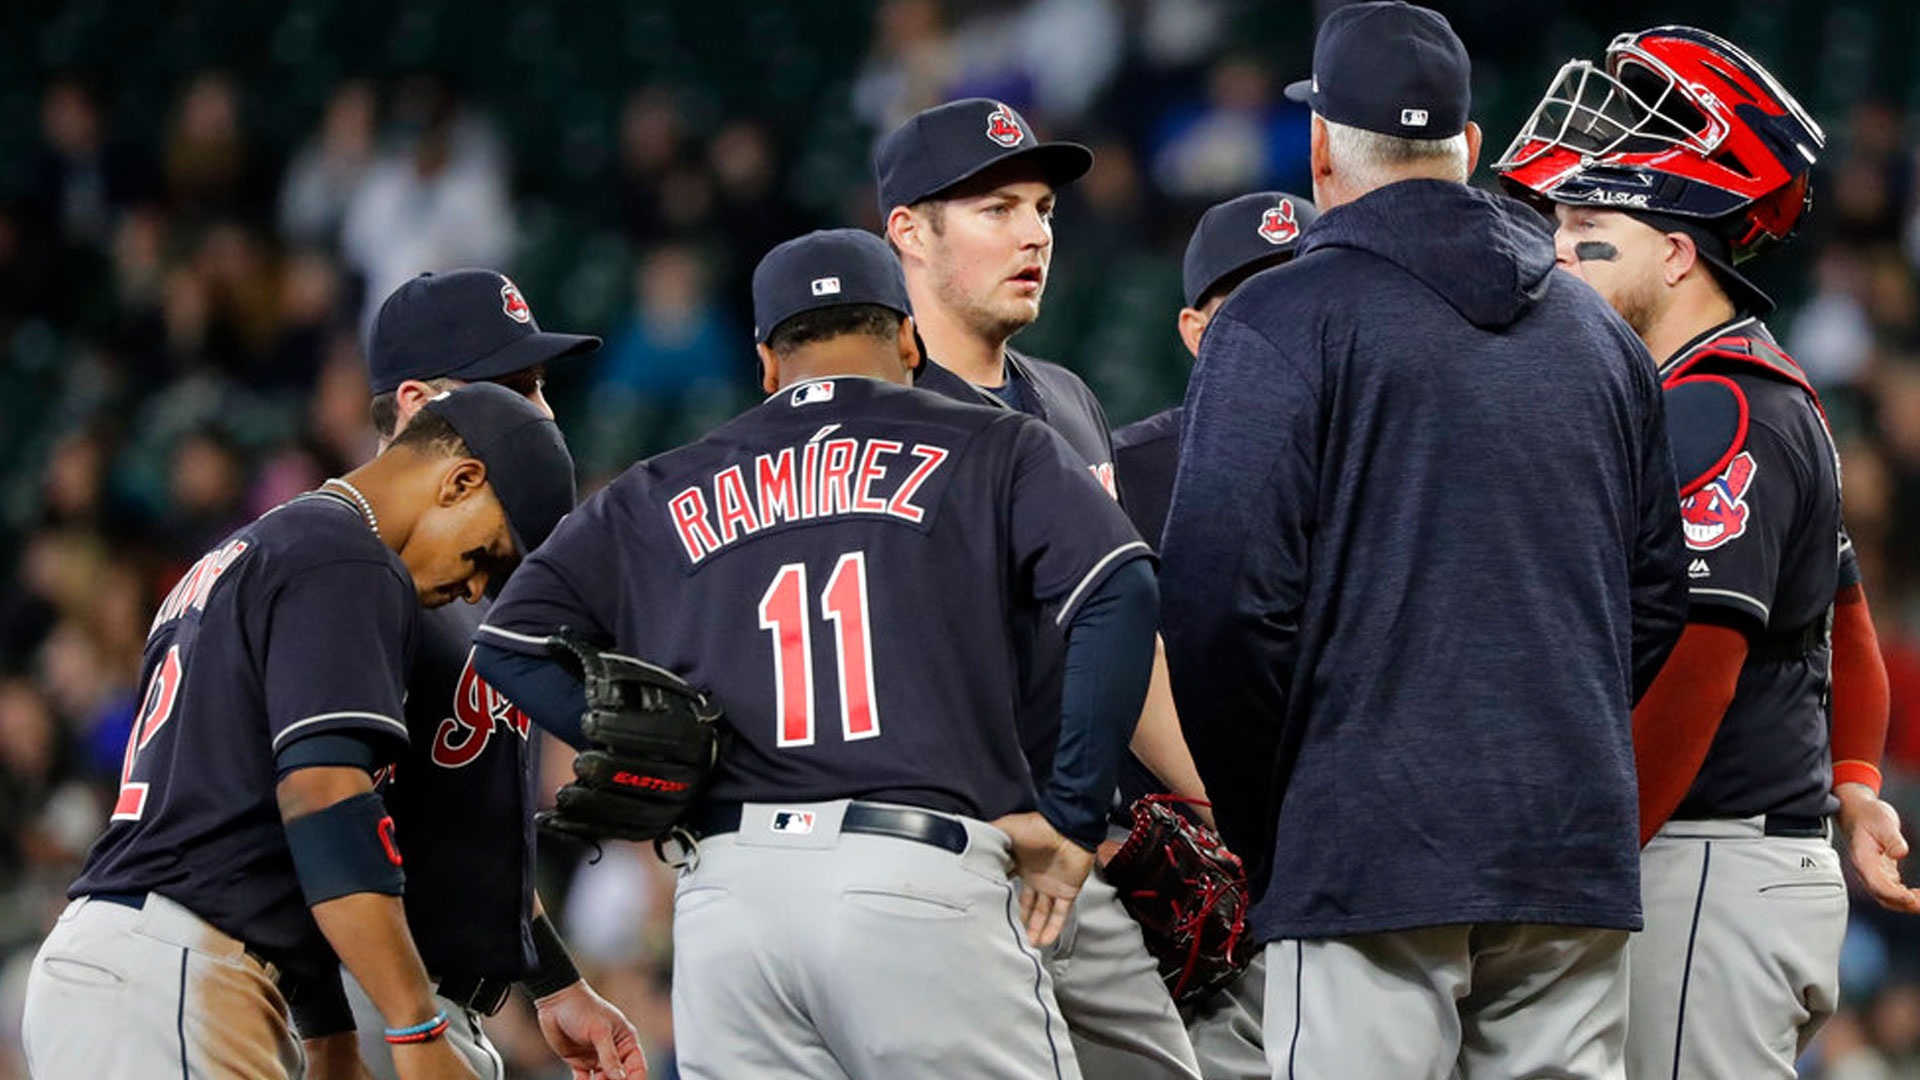 indians-mariners-cover_1522654141312.jpg